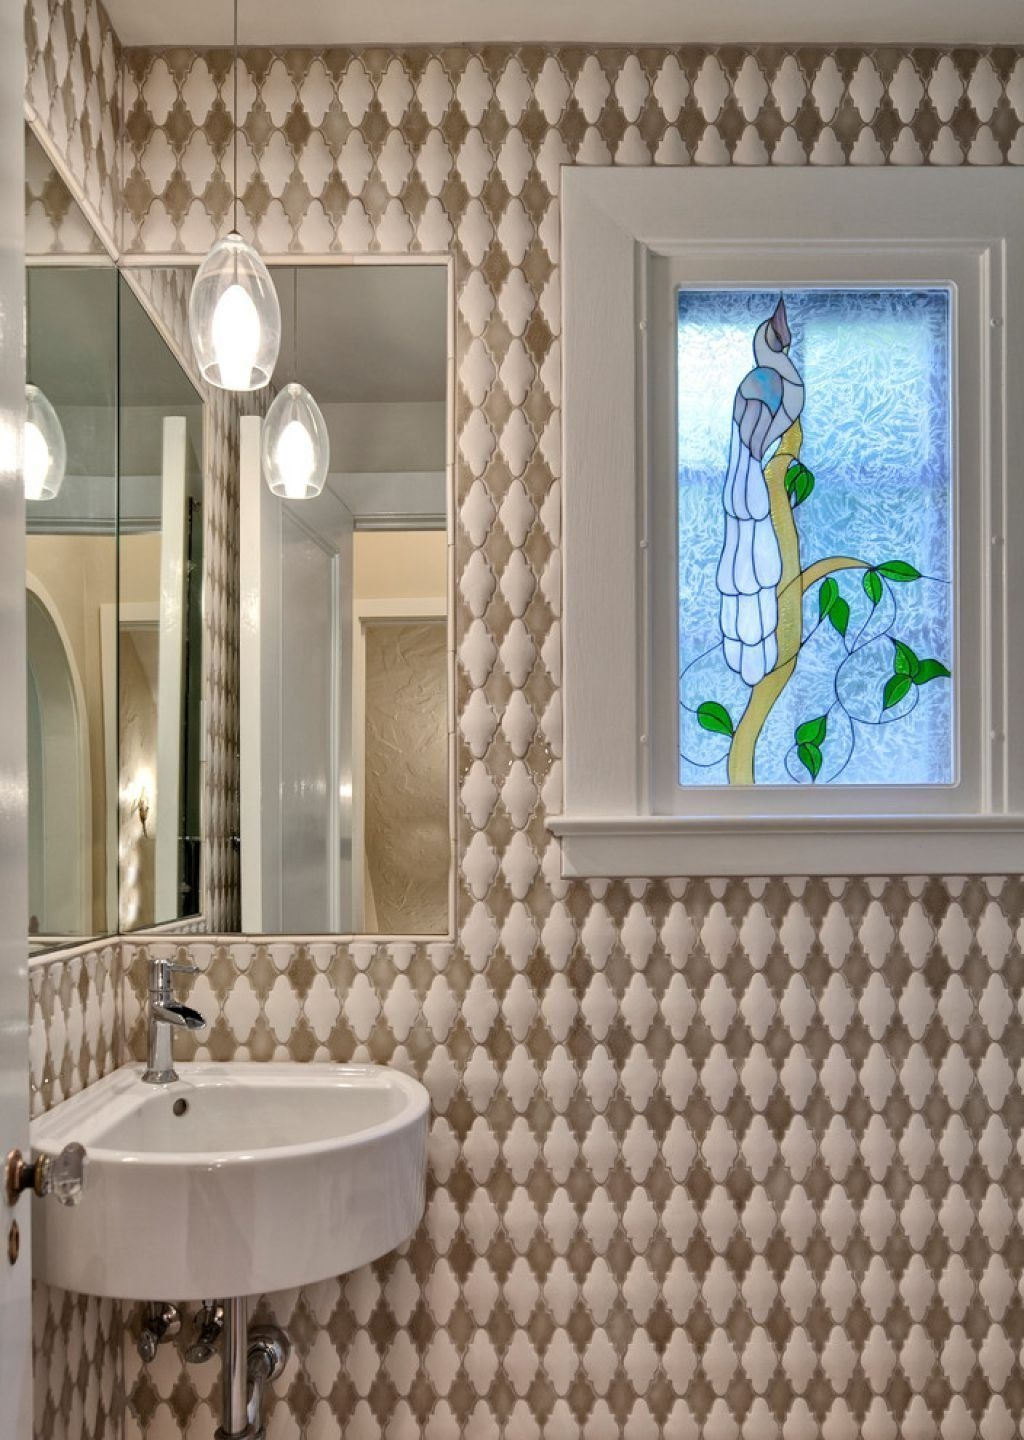 Outstanding Bathroom Makeovers Ideas For Small Space12